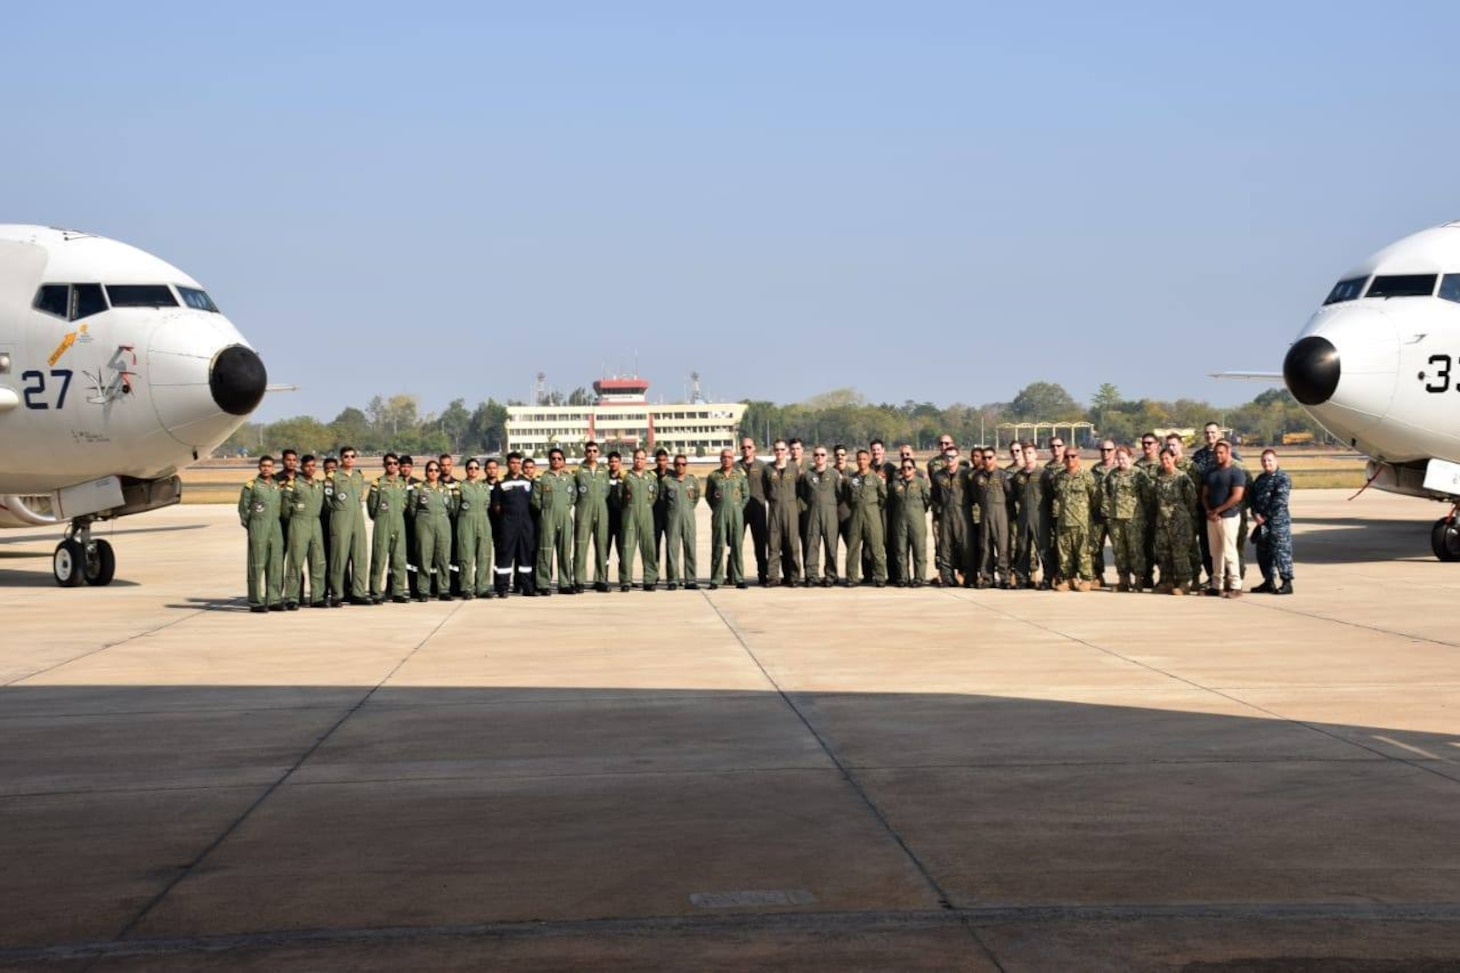 U.S. Navy Sailors pose for a group photo with Indian navy aircrews during a subject matter expert exchange.